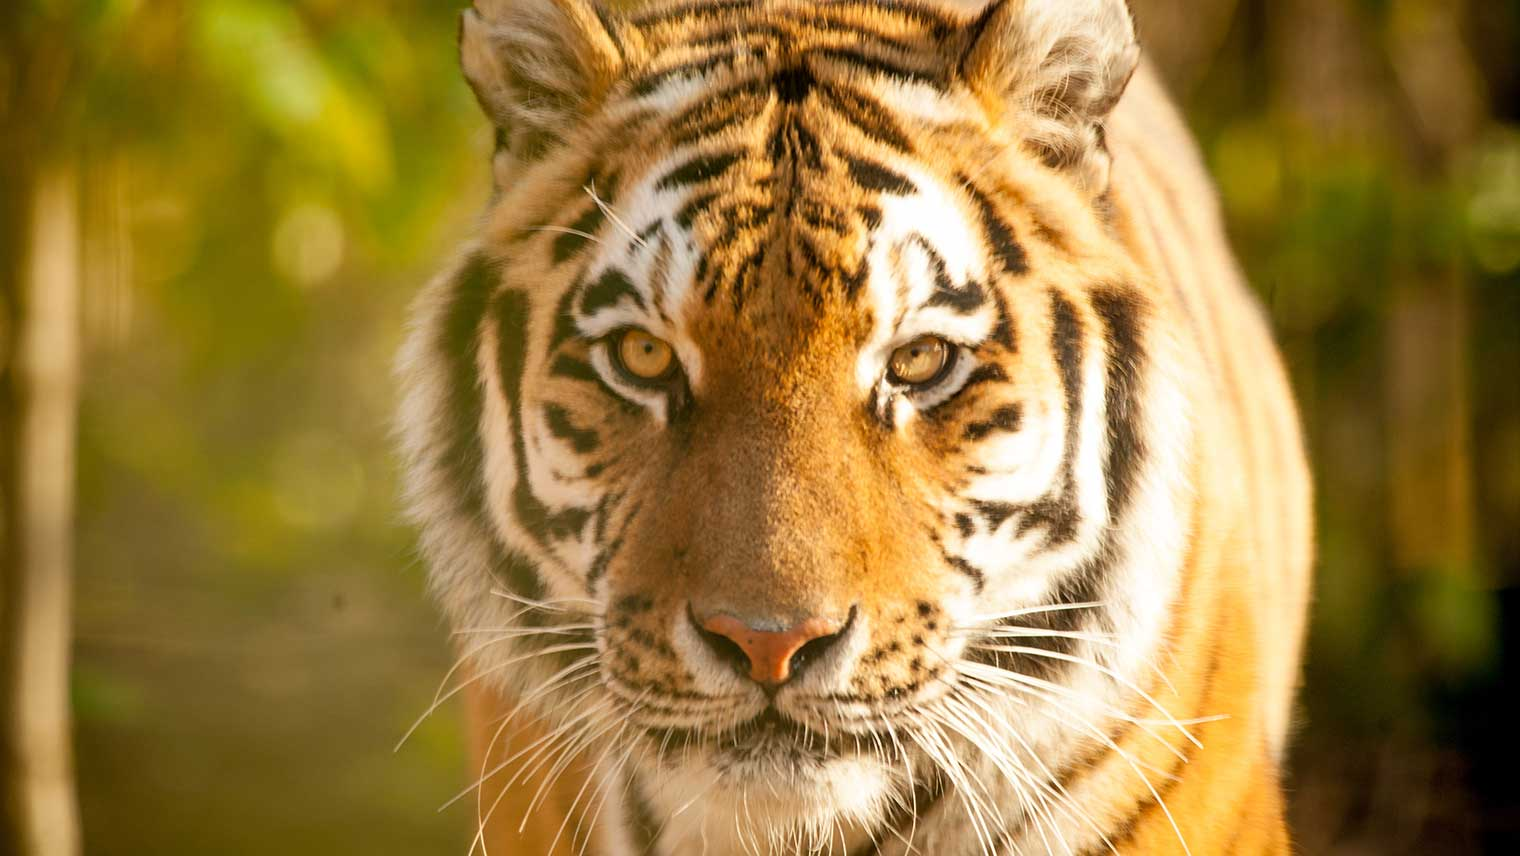 Tigers at Chessington World of Adventures